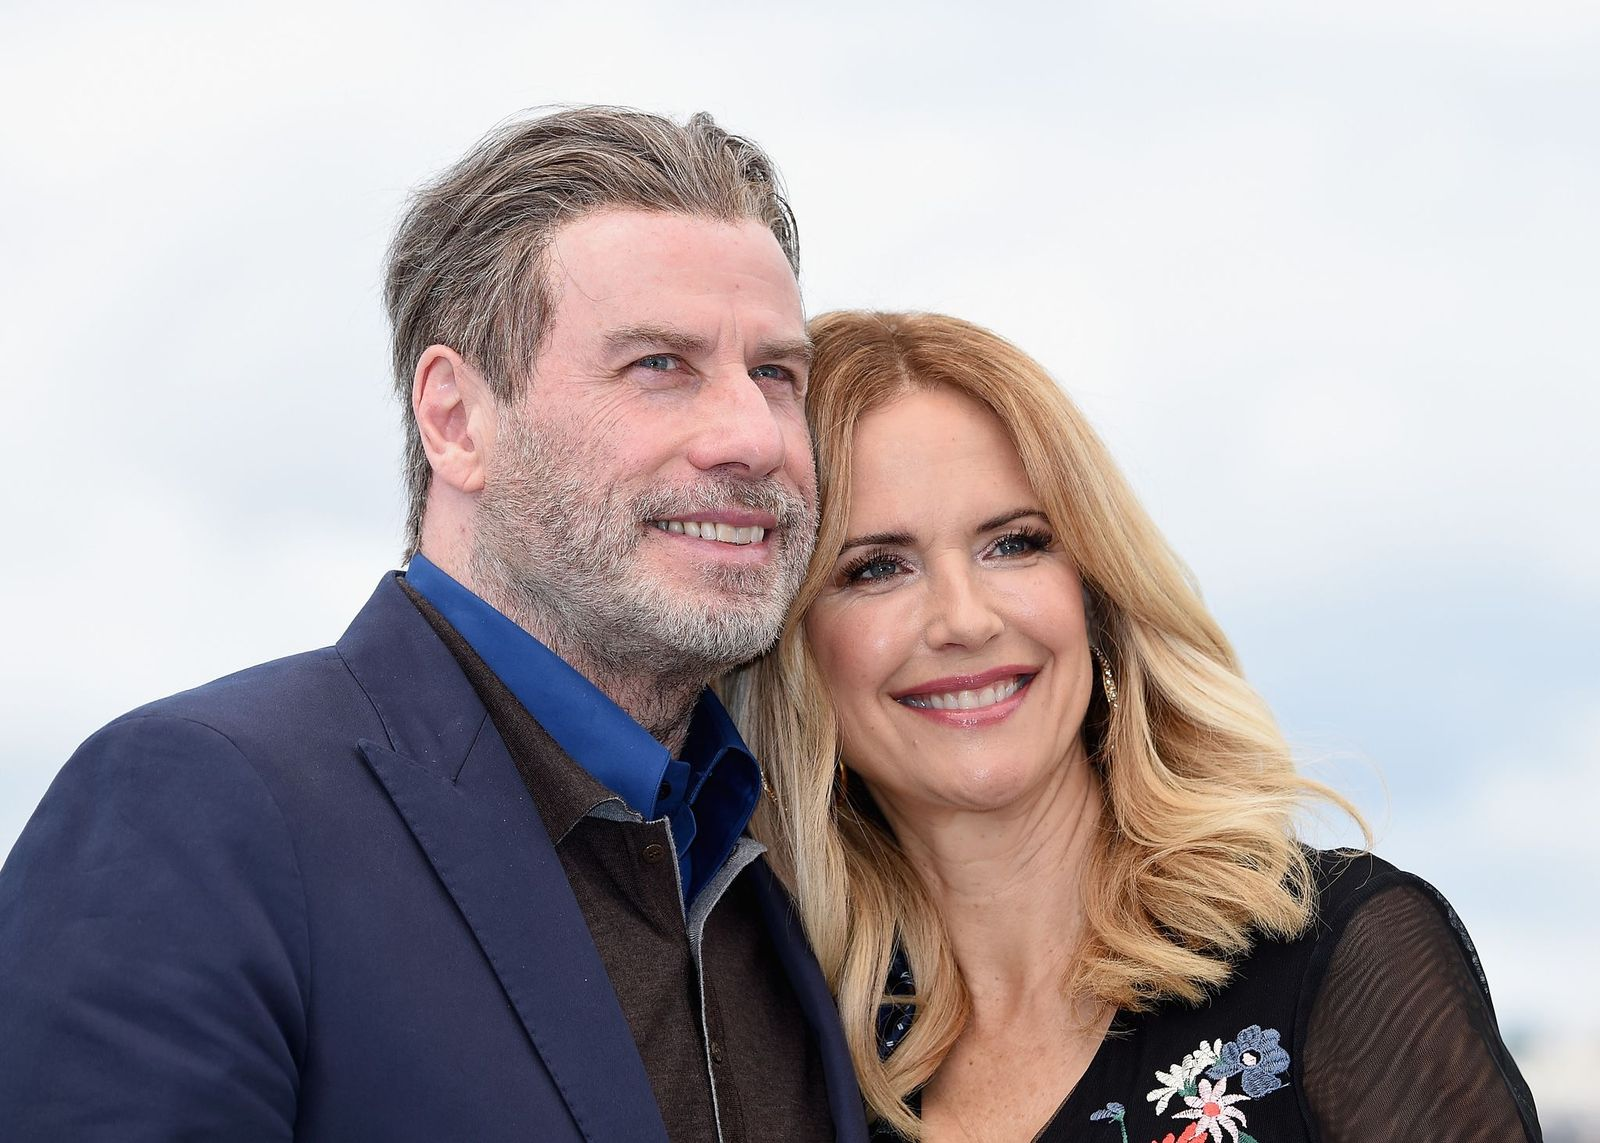 John Travolta and Kelly Preston atthe 71st annual Cannes Film Festival on May 15, 2018, in Cannes, France   Photo:Dominique Charriau/WireImage/Getty Images